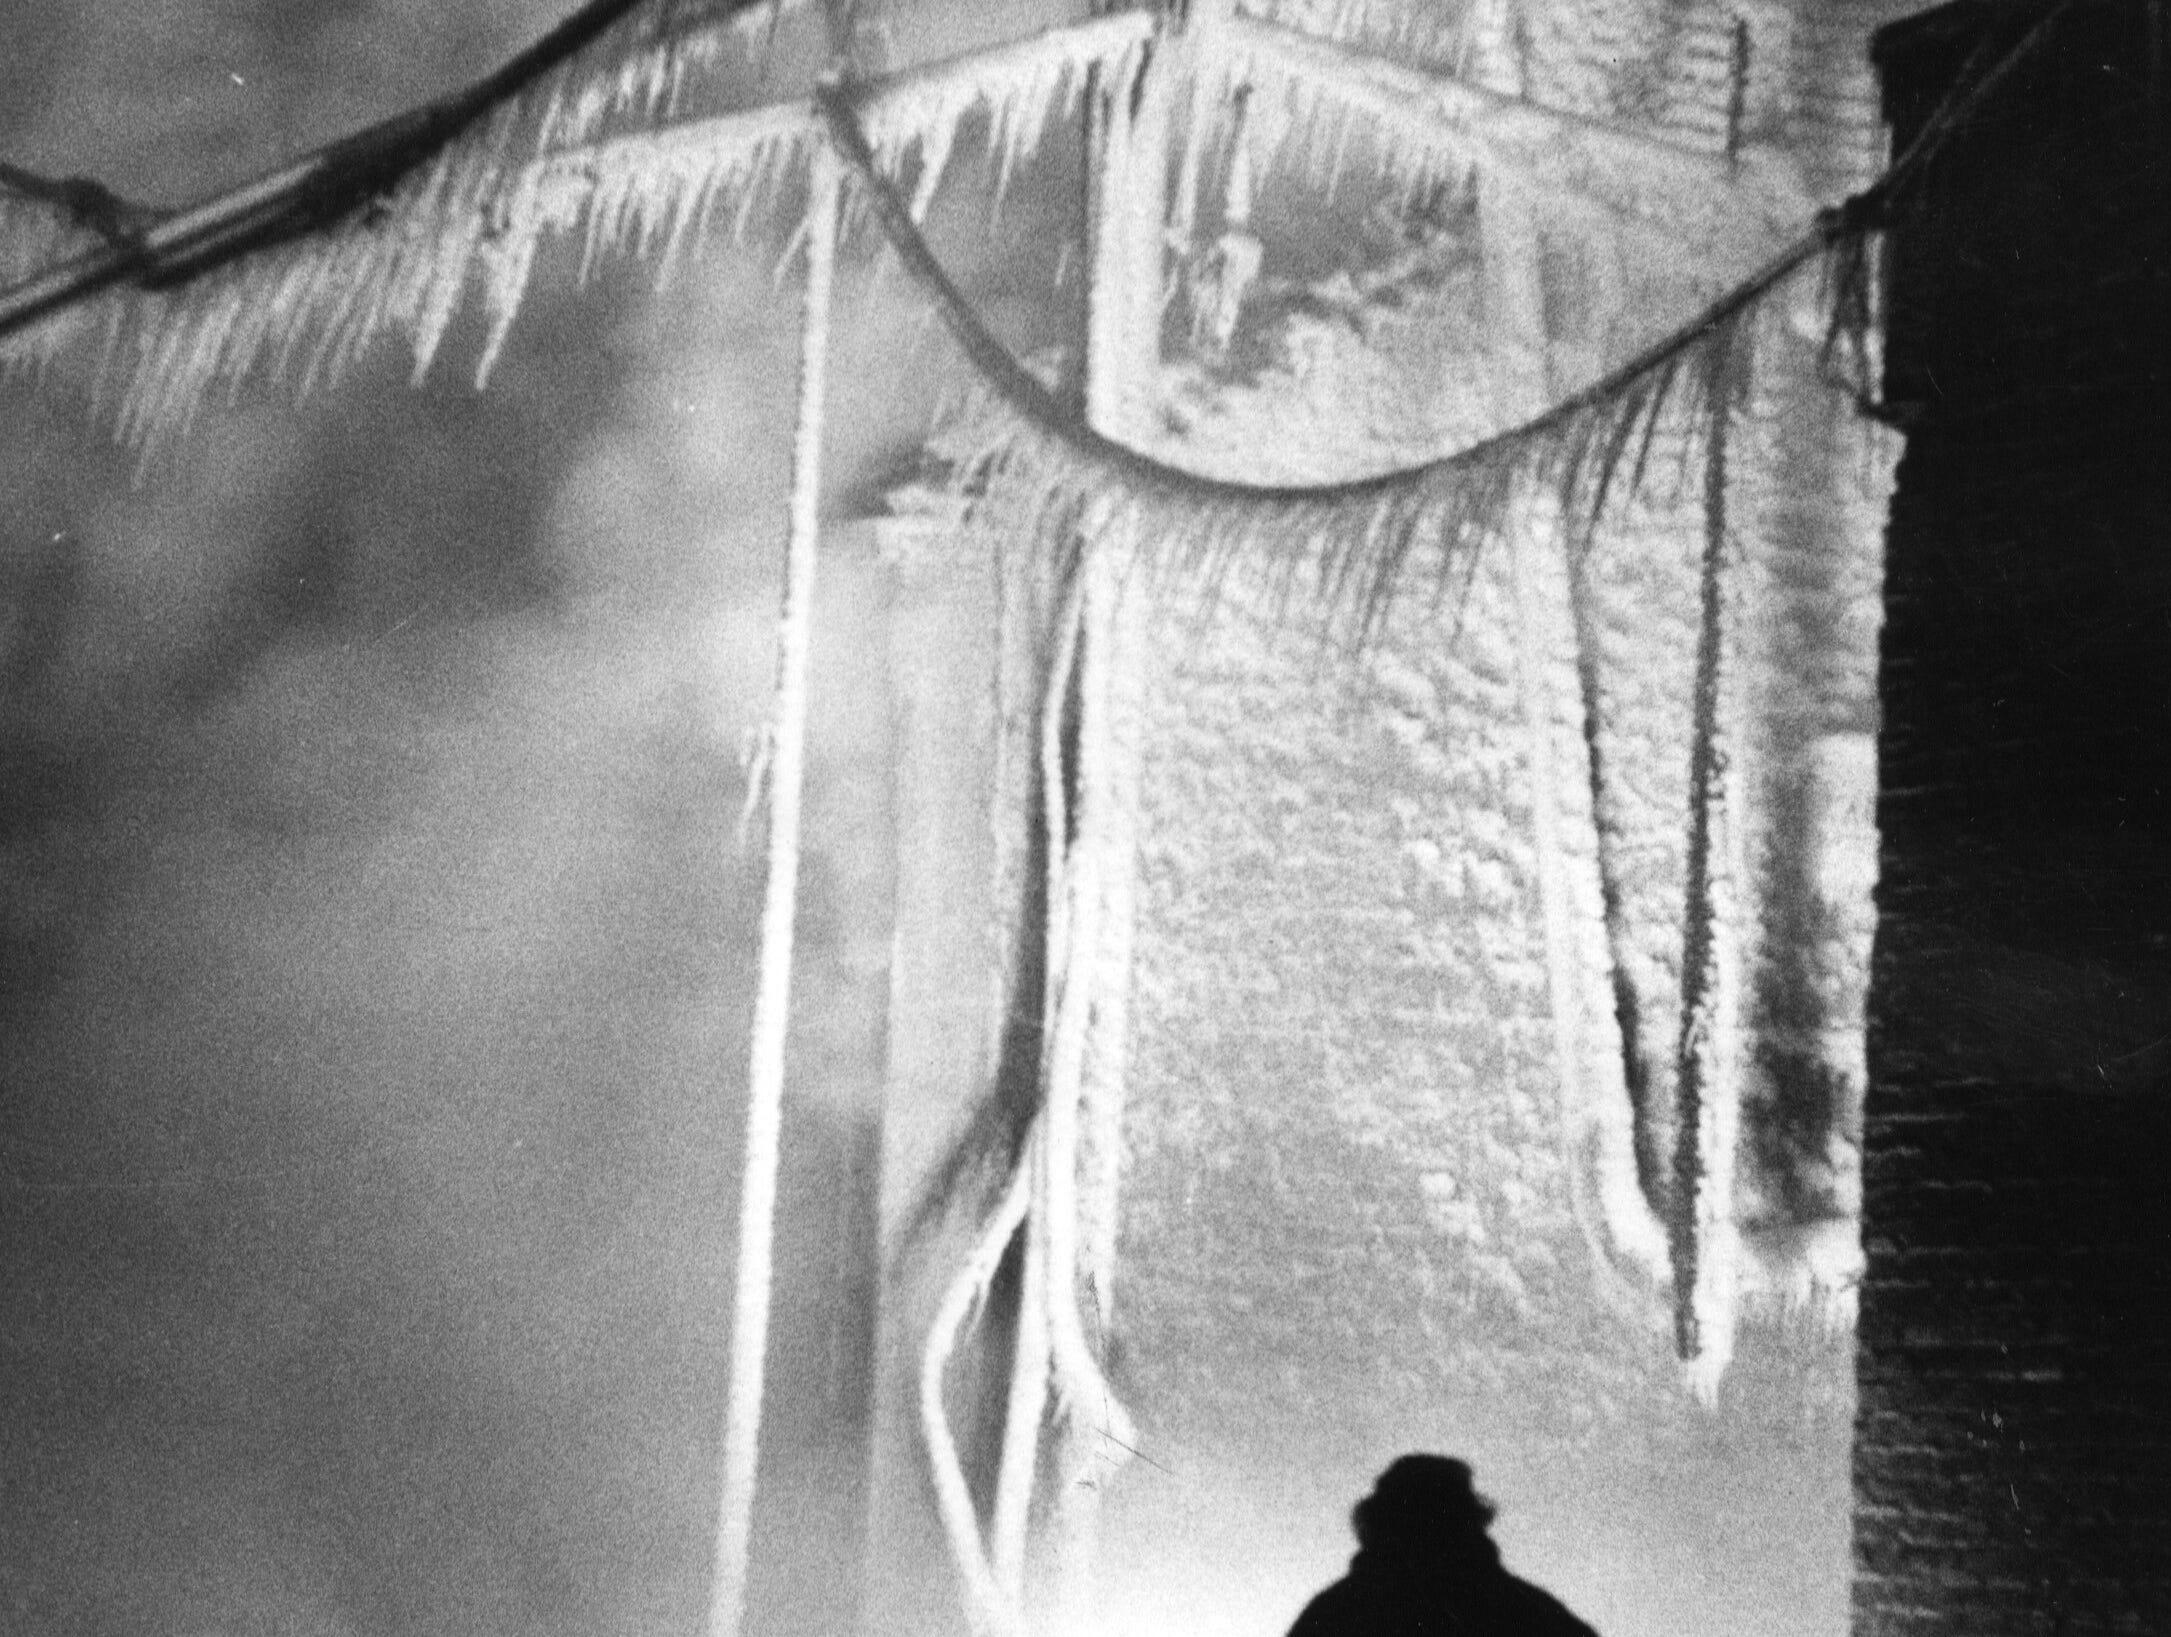 The hull or the Brinly-Handy Co. building on Preston St., near Main, is coated with ice after the fire was brought under control. 